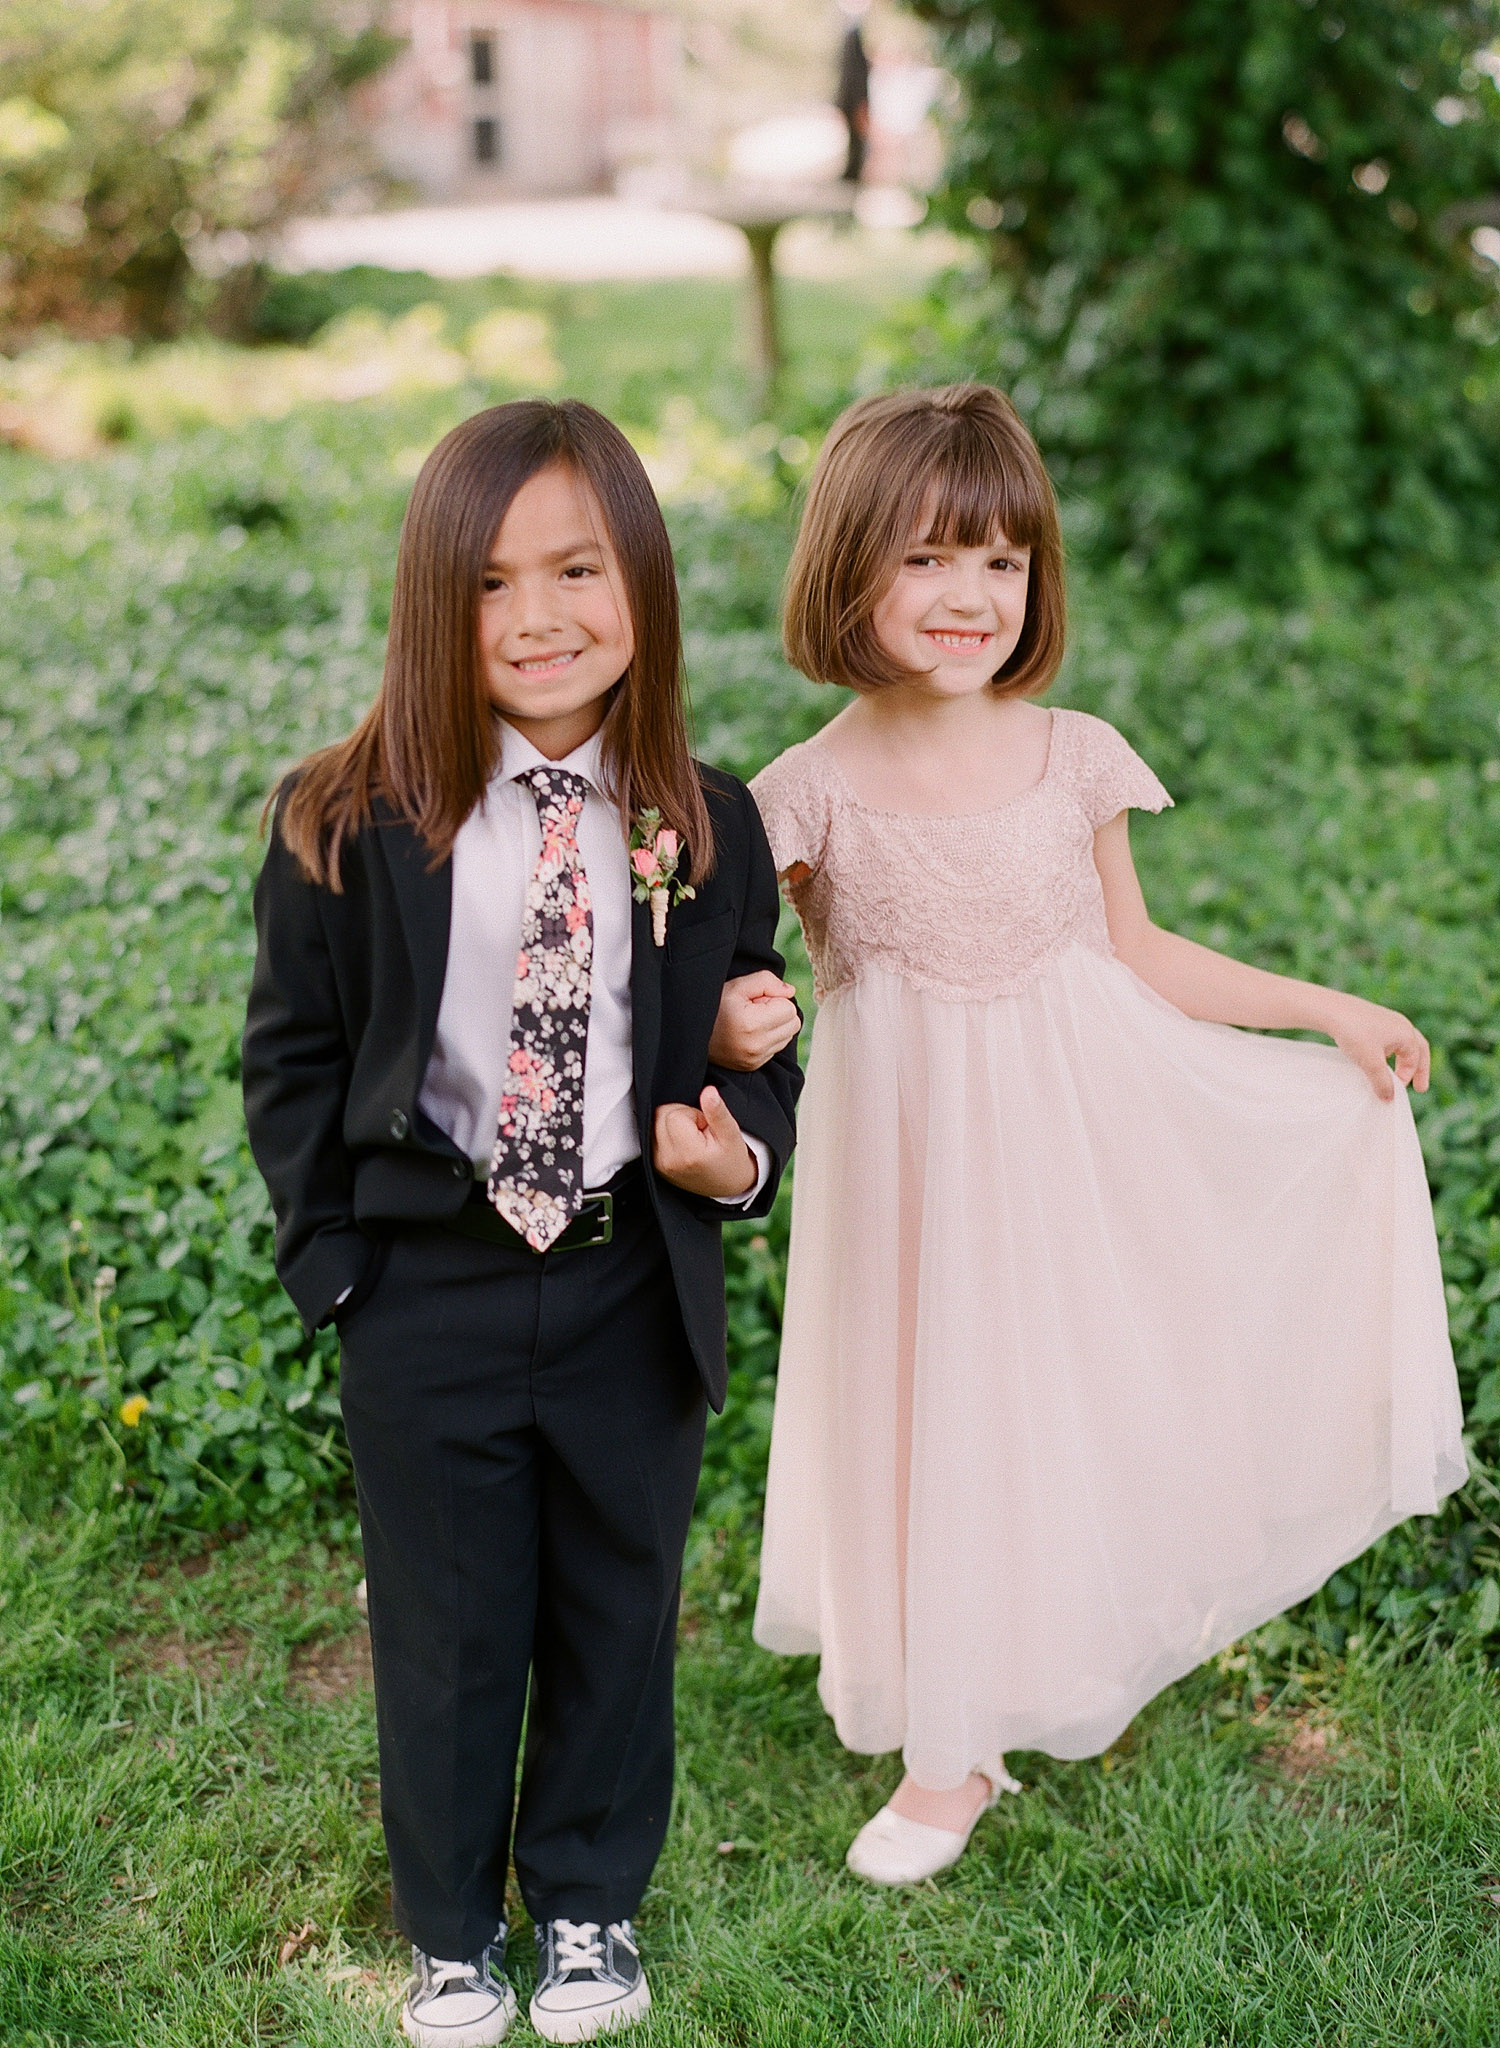 ring bearer and flower girl outfits are adorable at this springtime wedding at Northwind Perennial Garden - a beautiful wisconsin wedding venue - while Destination wedding photographer Lexia Frank Photographs this wedding on film